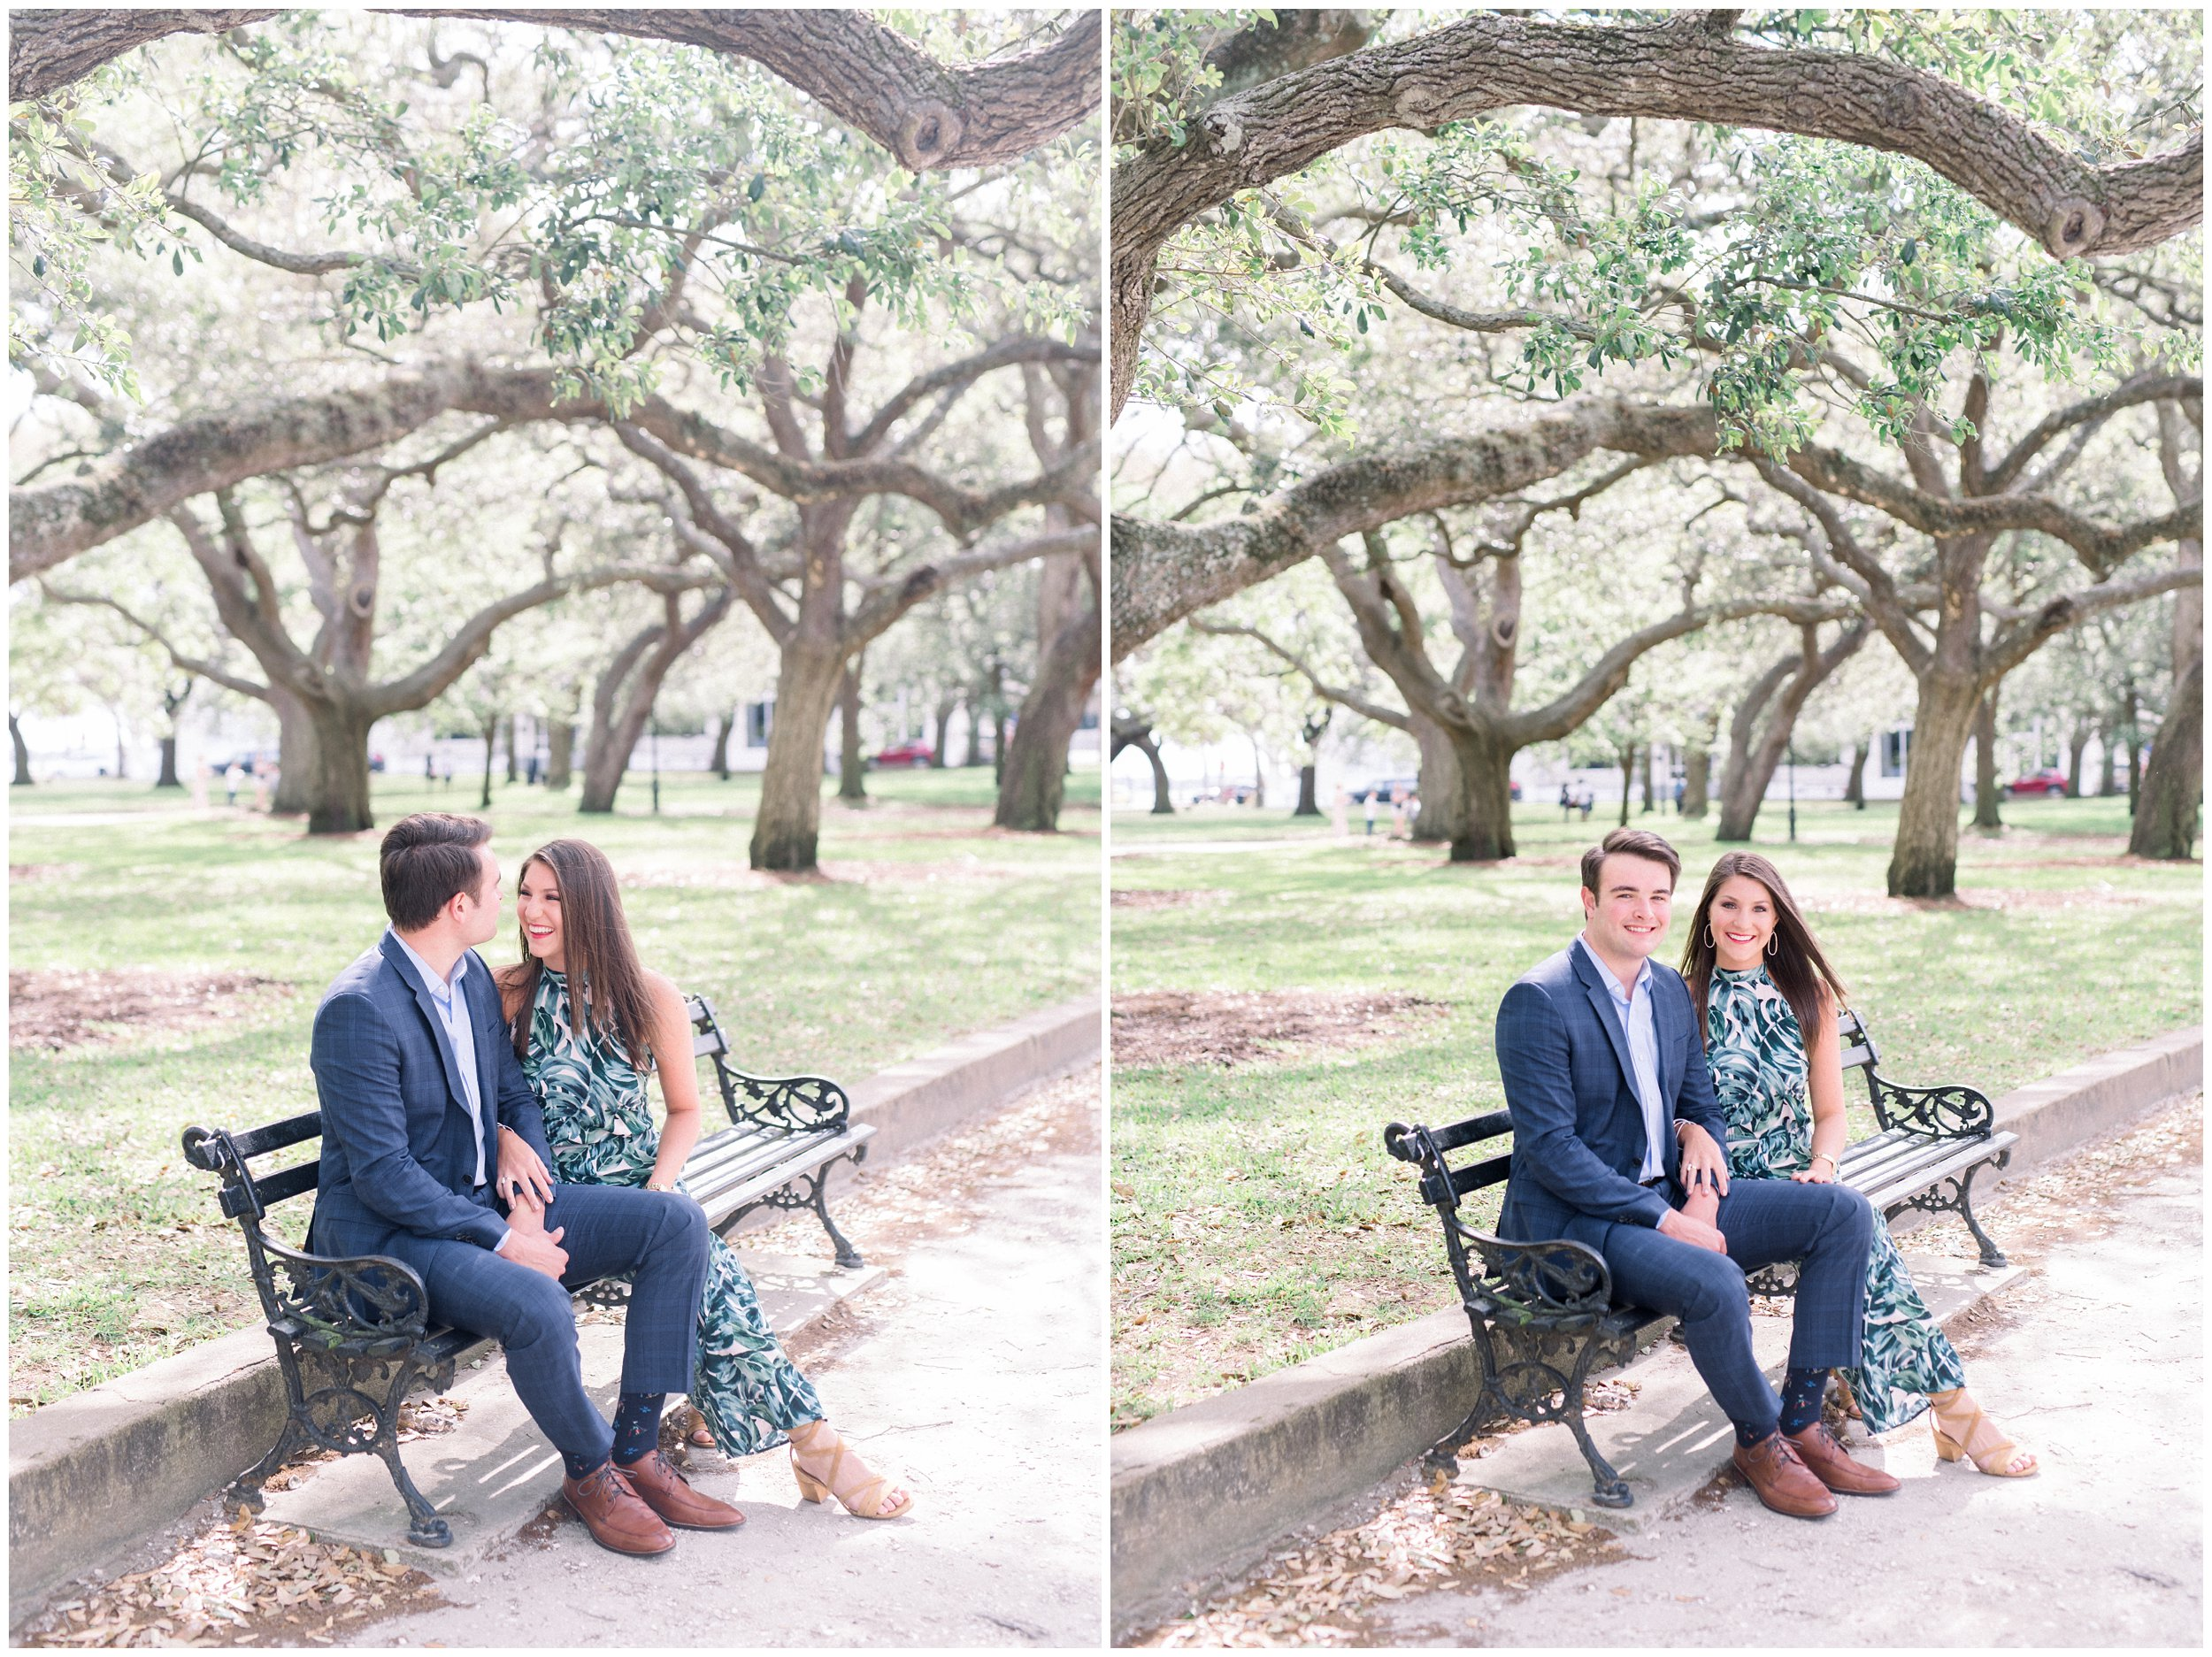 couple sitting in park on bench